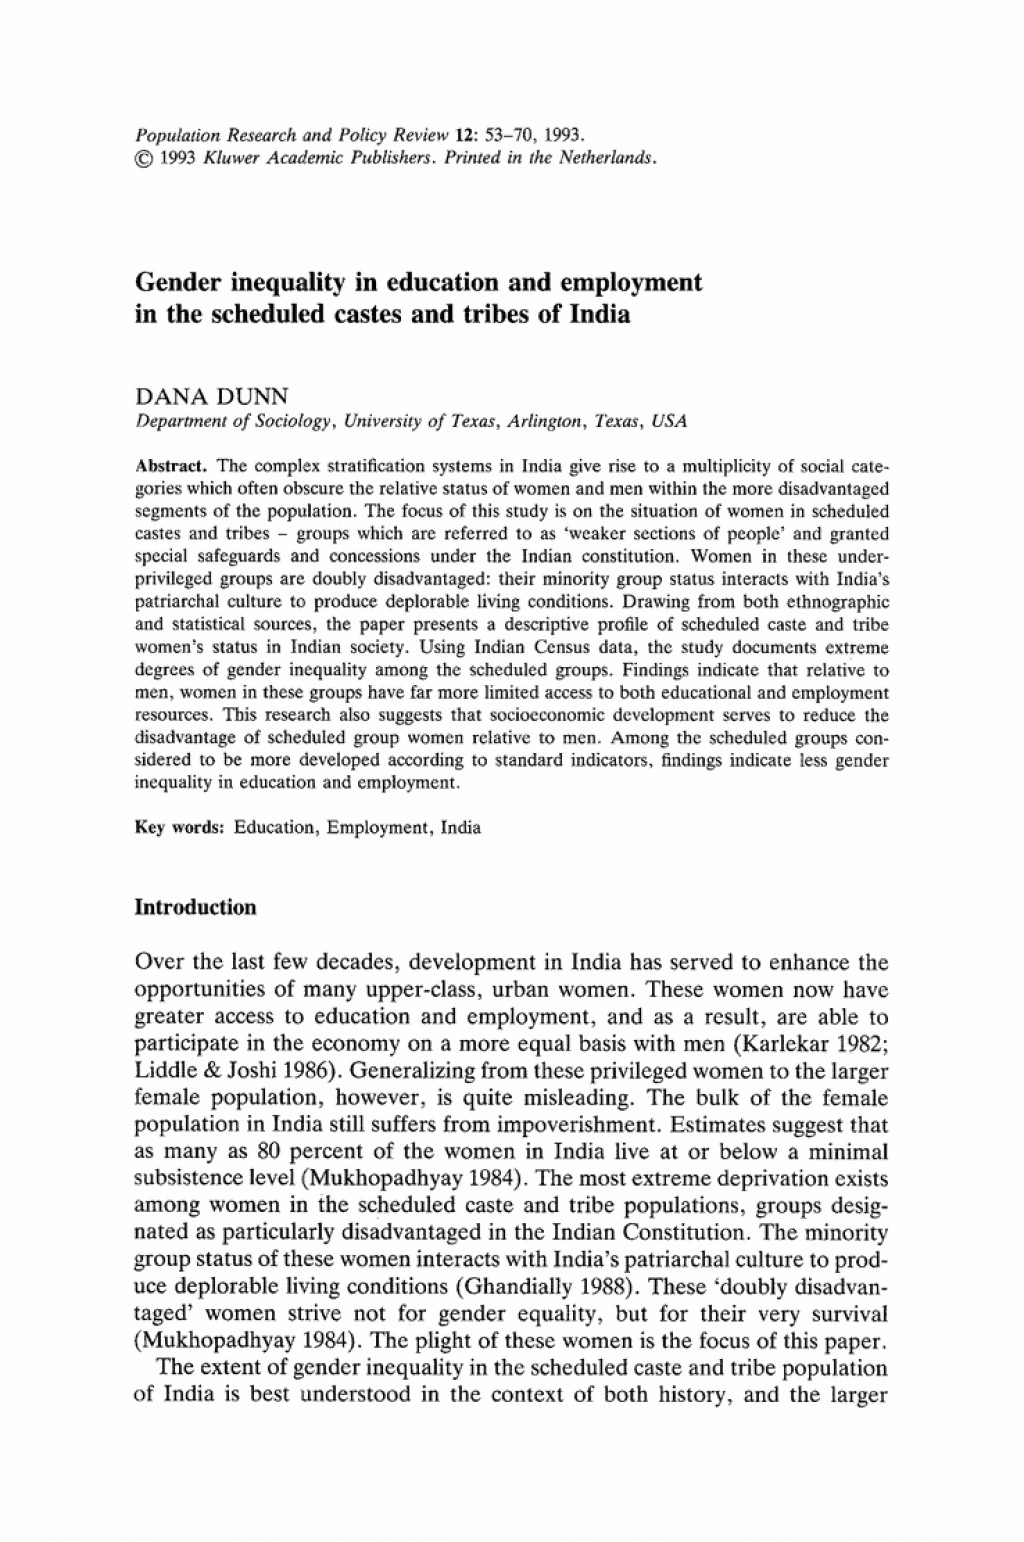 005 Essay Example Equality About Education And Employment On In Indiaathenata Com Gender L Formidable Conclusion Wikipedia Hindi Of Opportunity Large